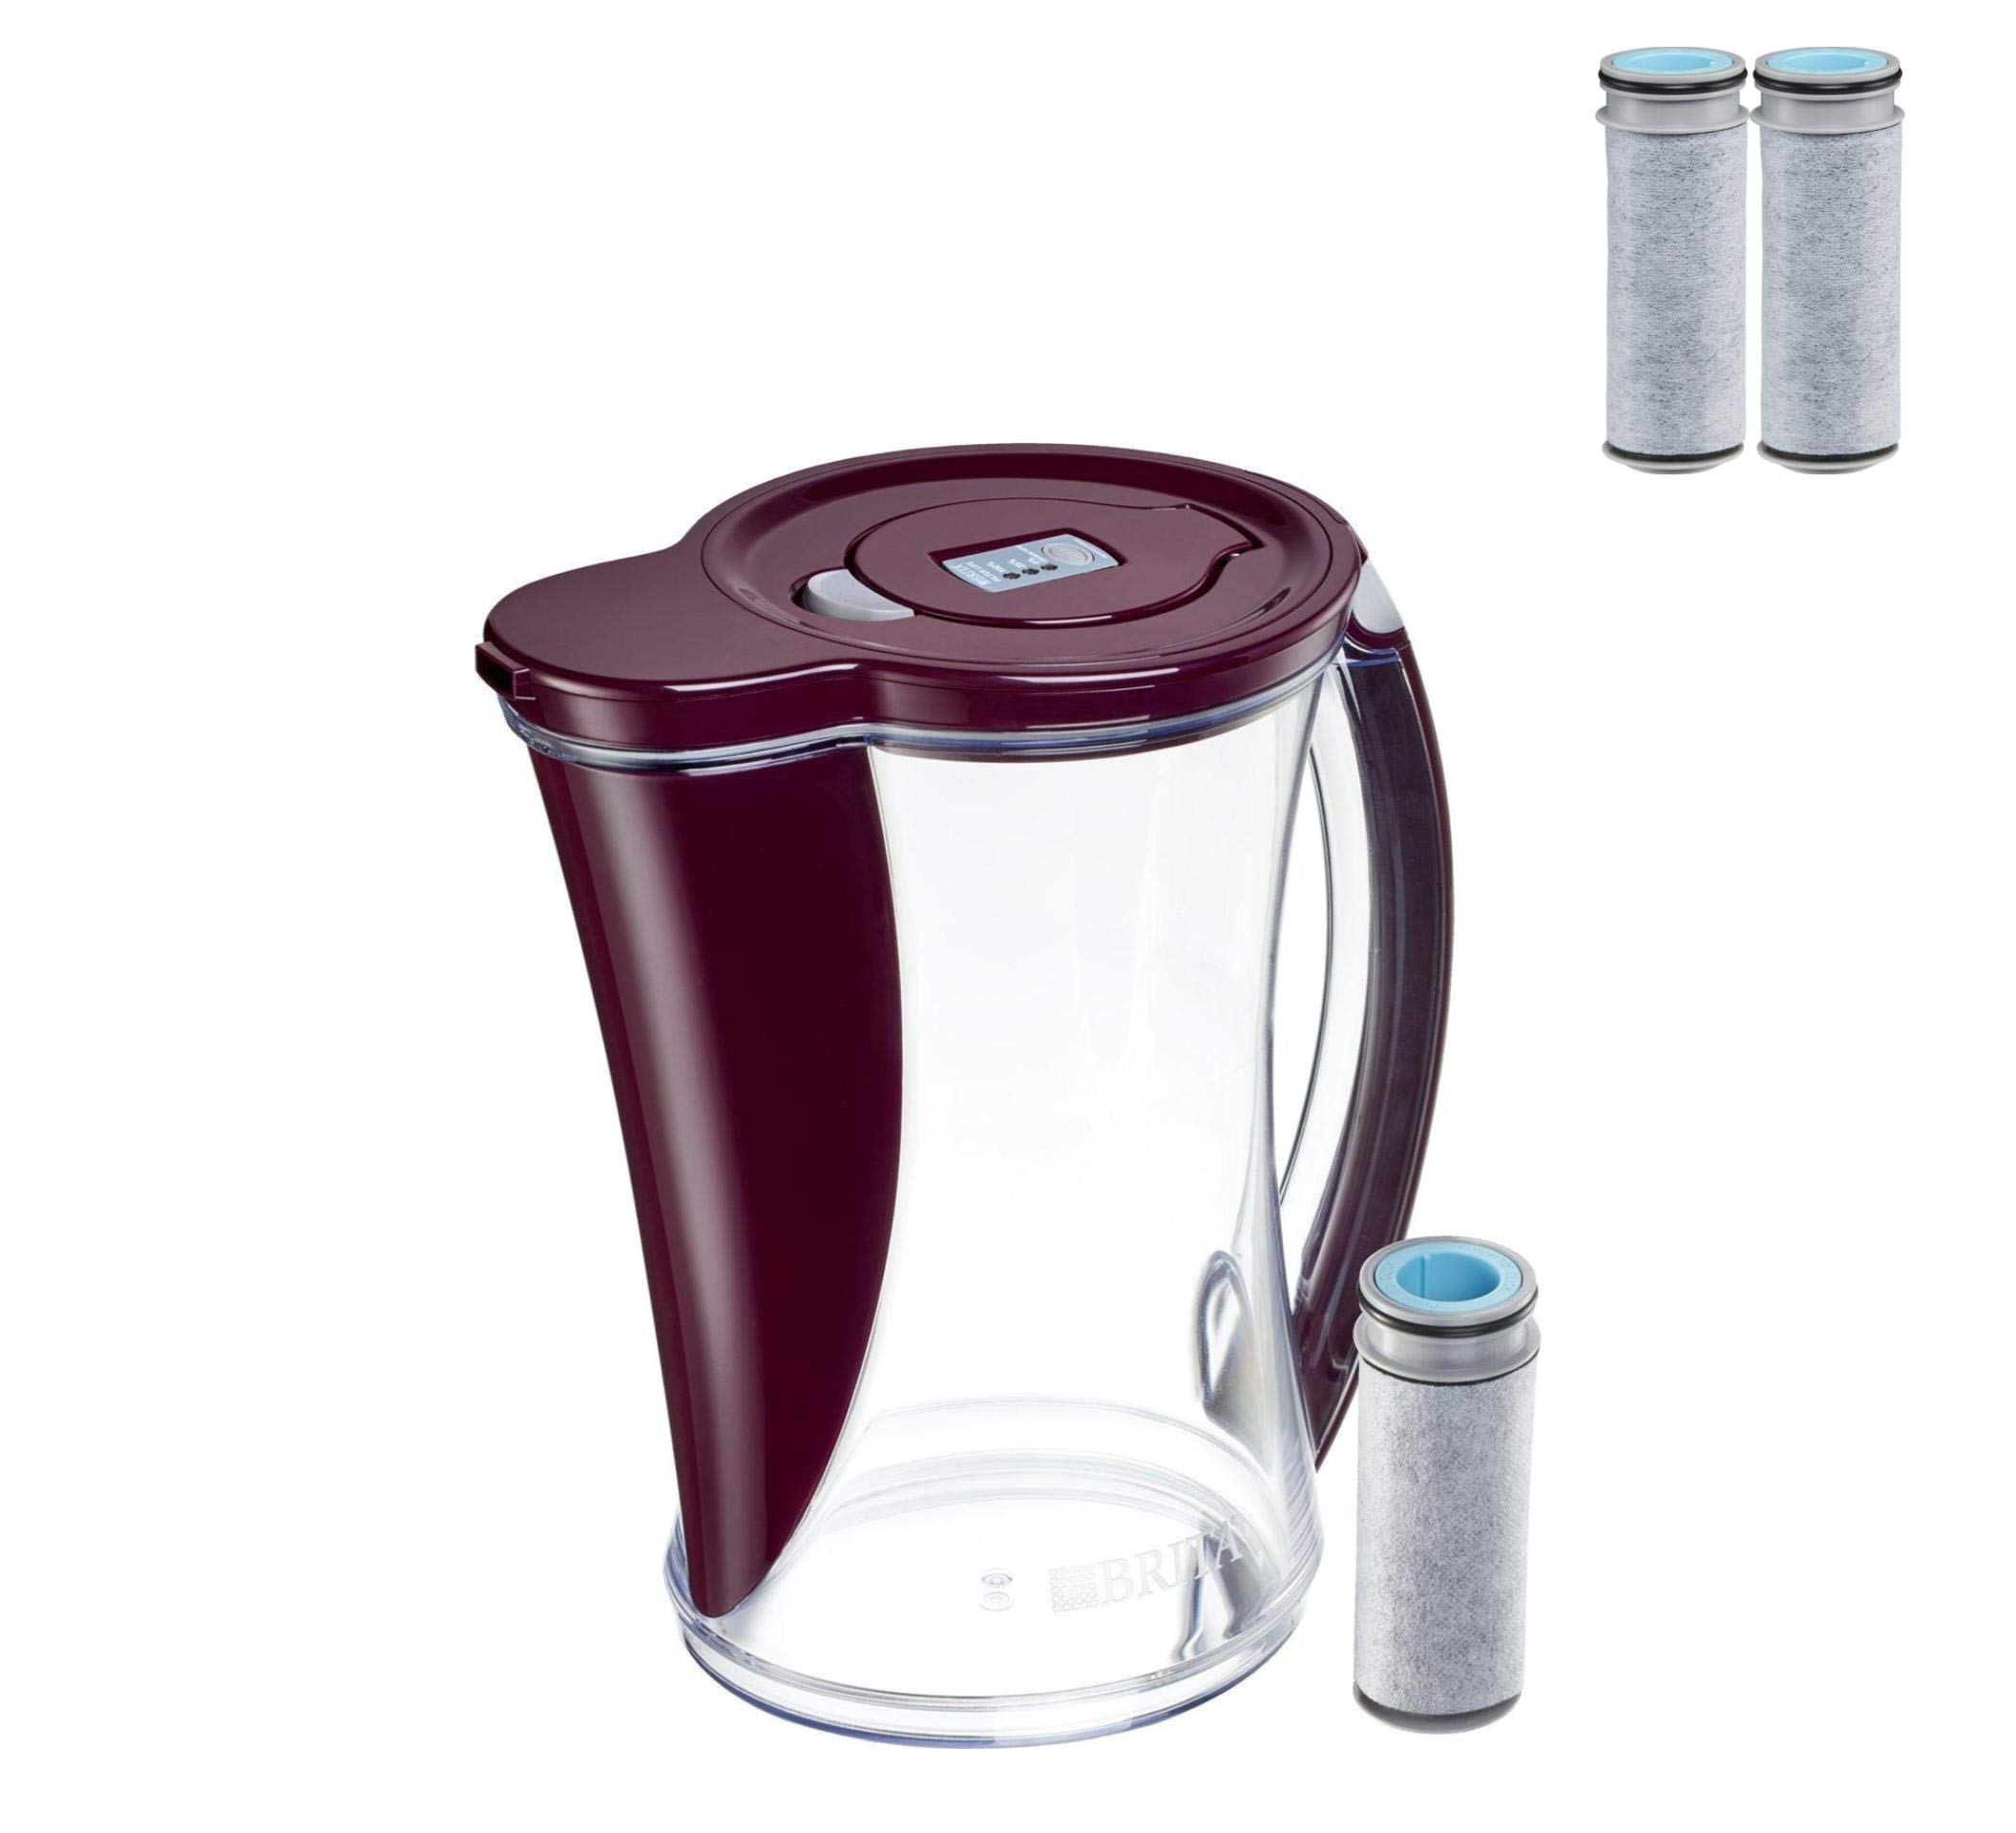 Brita 12 Cup Stream Filter As You Pour Water Pitcher (Pitcher with 3 Filters)